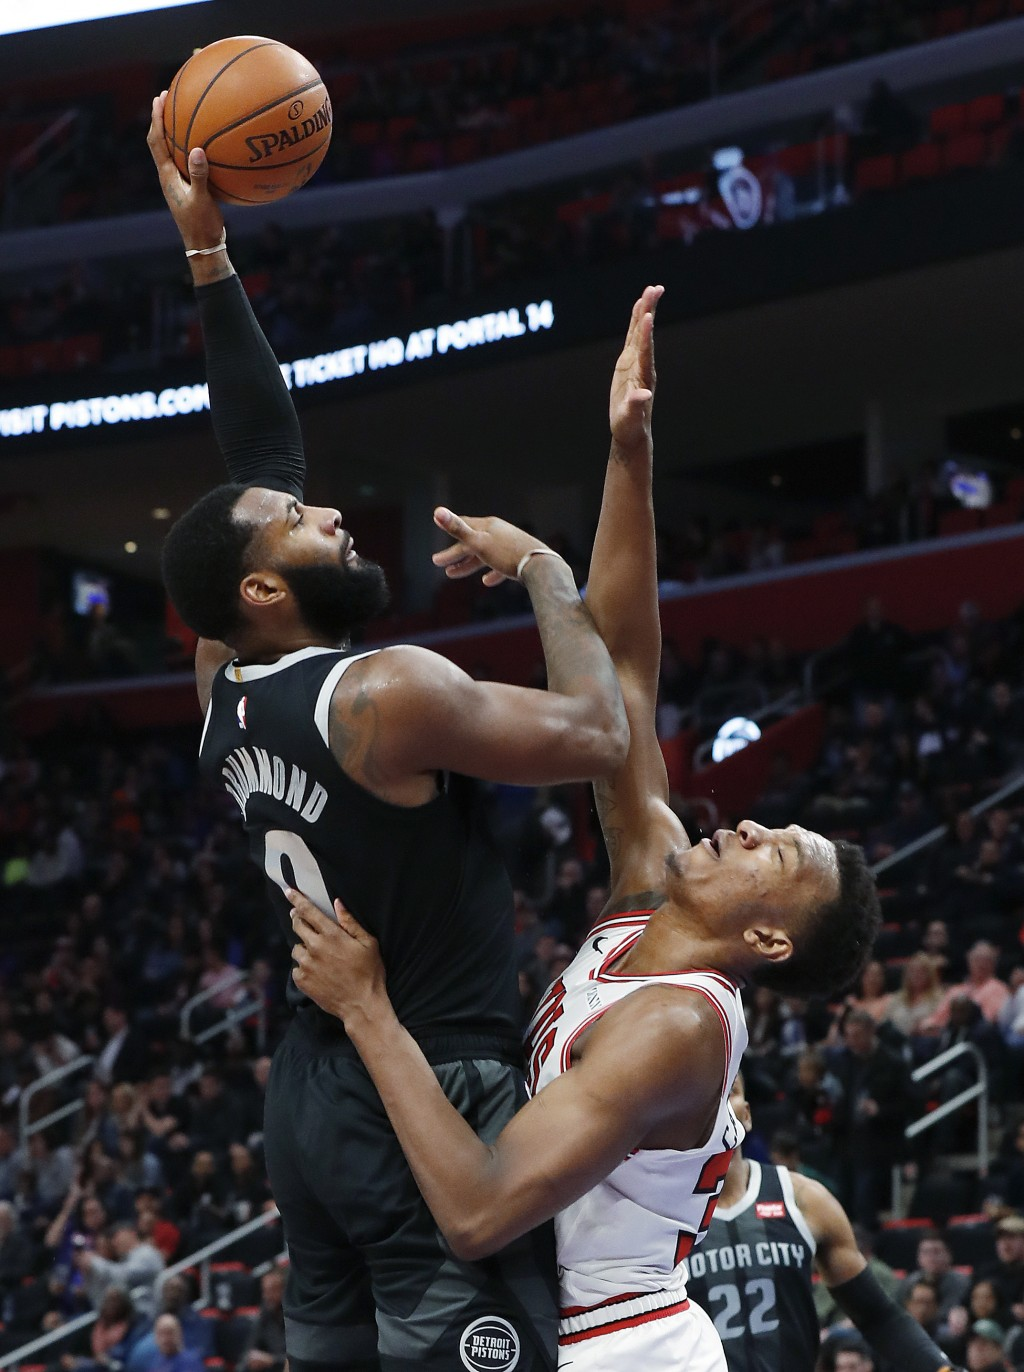 Detroit Pistons center Andre Drummond (0) shoots over Chicago Bulls forward Wendell Carter Jr. (34) during the second half of an NBA basketball game i